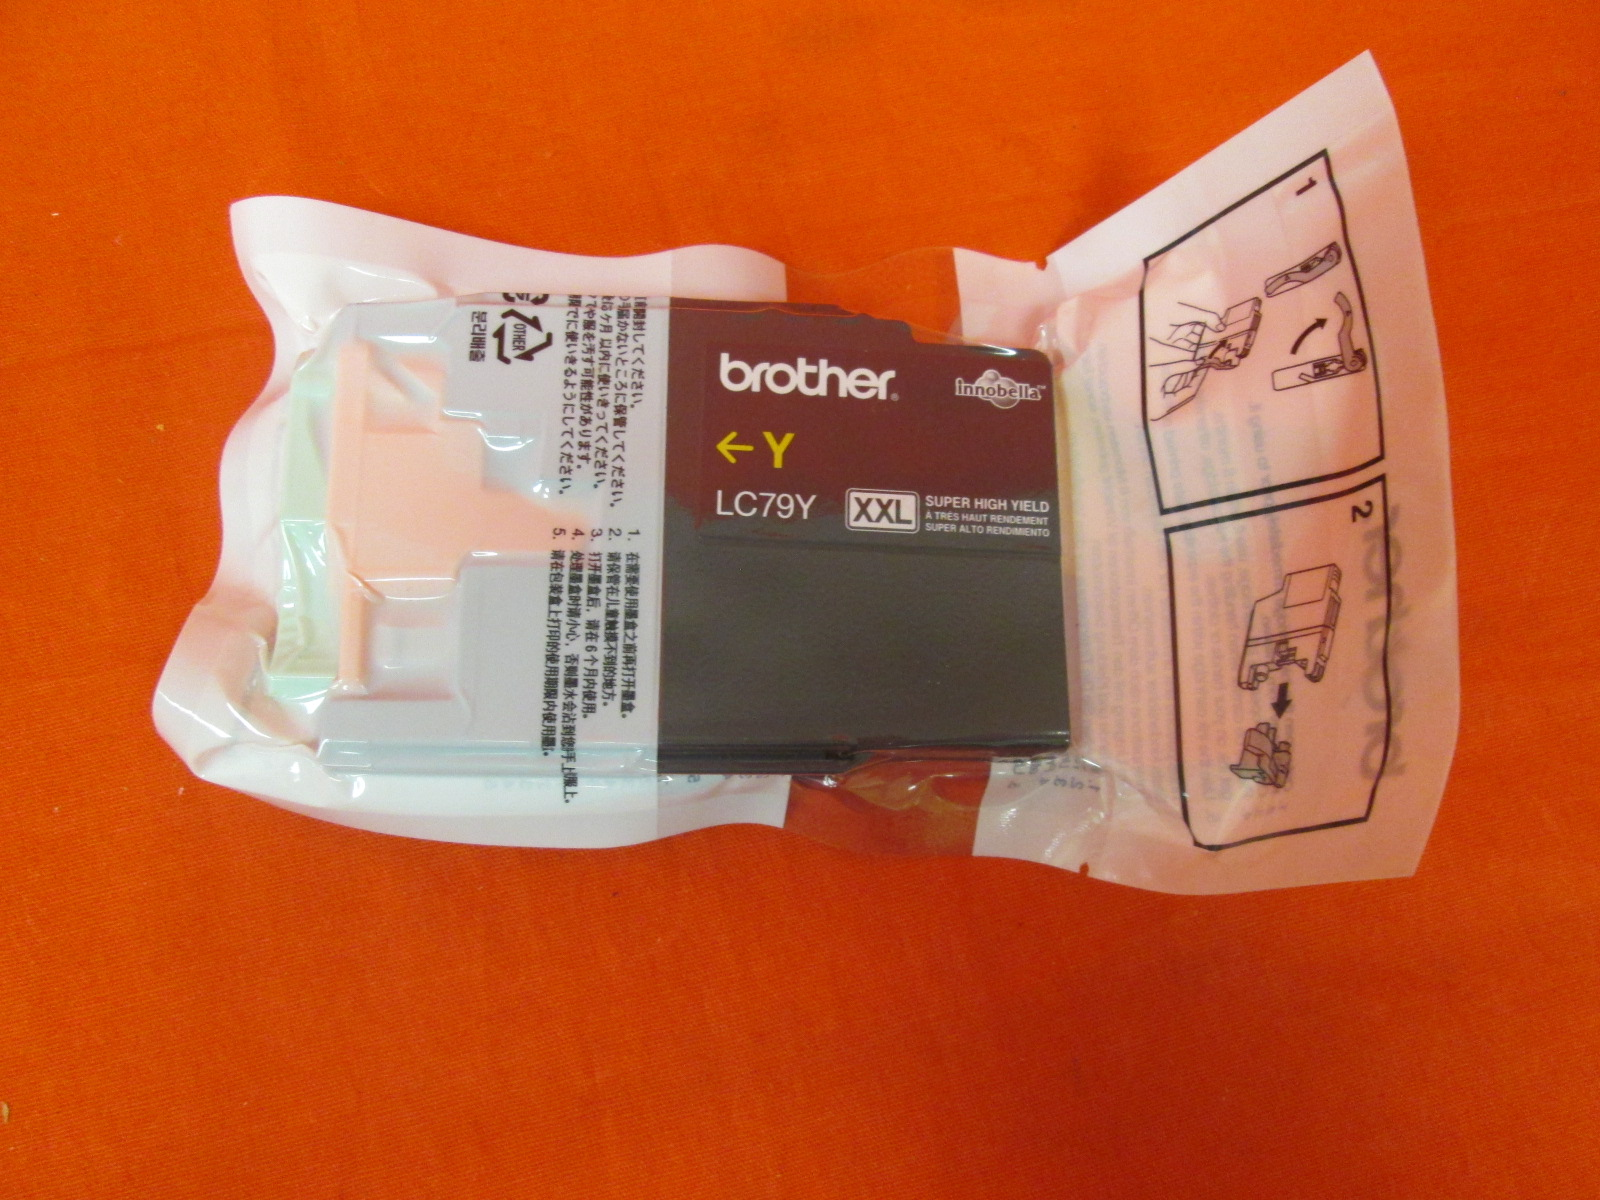 Brother Printer LC79Y Super High Yield XXL Yellow Cartridge Ink